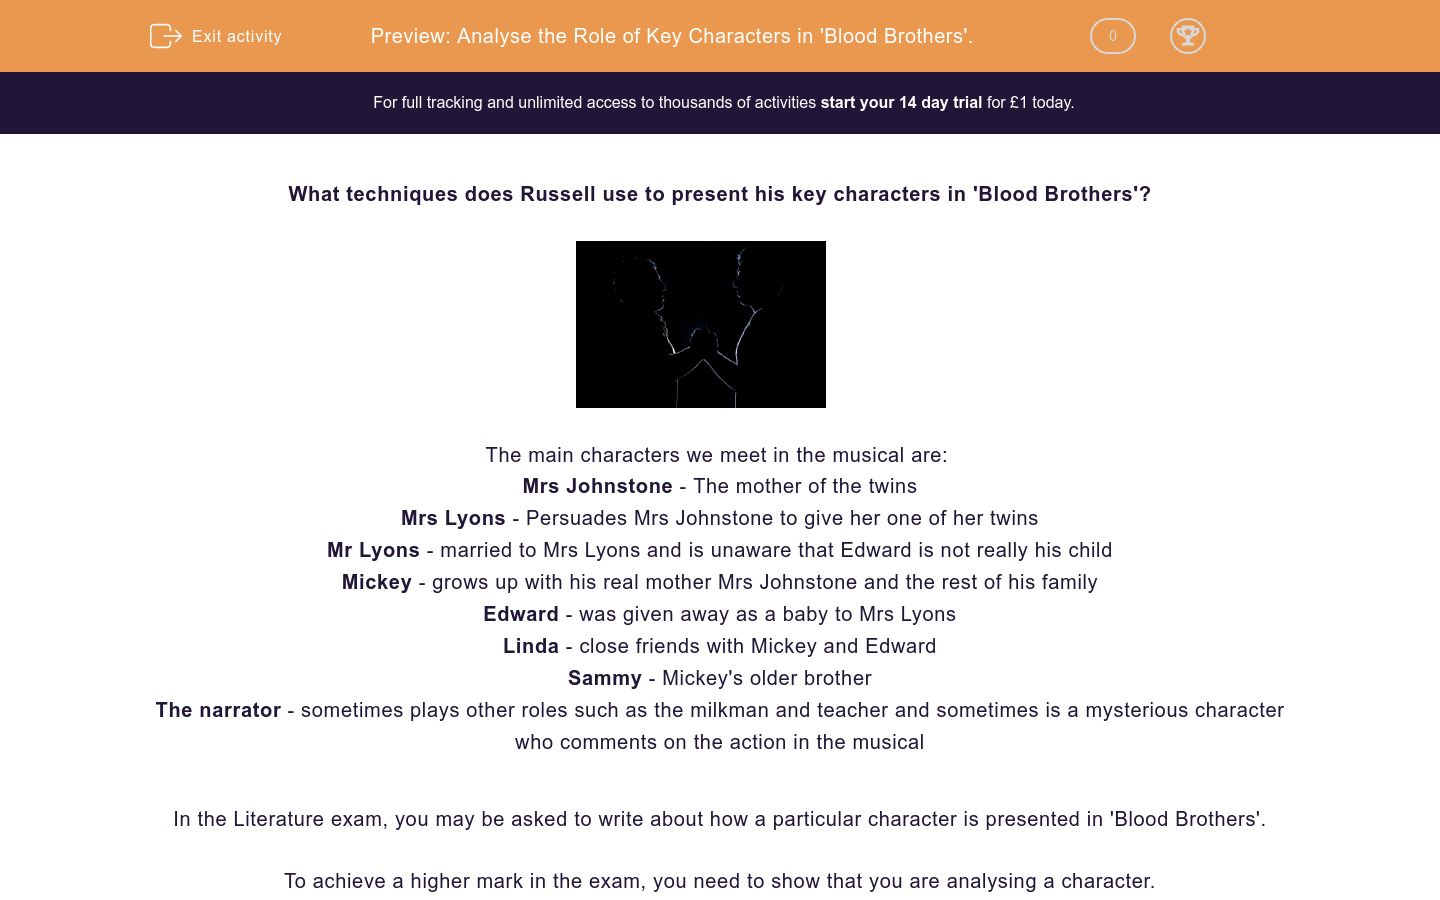 'Analyse the Role of Key Characters in 'Blood Brothers'.' worksheet